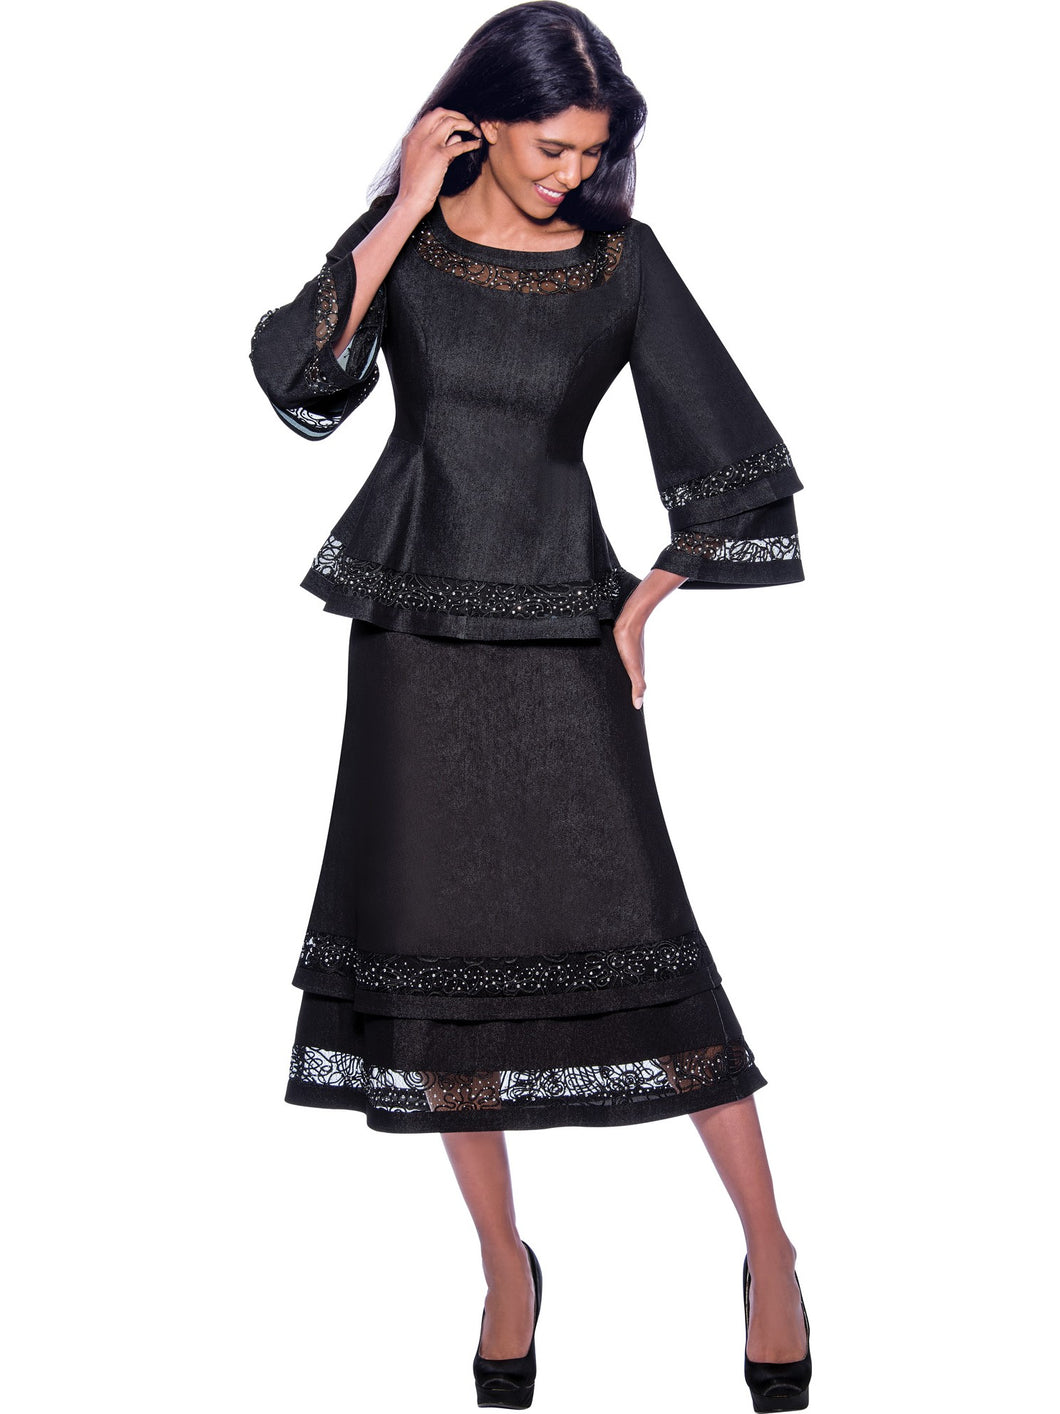 DS62282 (Sizes 8-18)